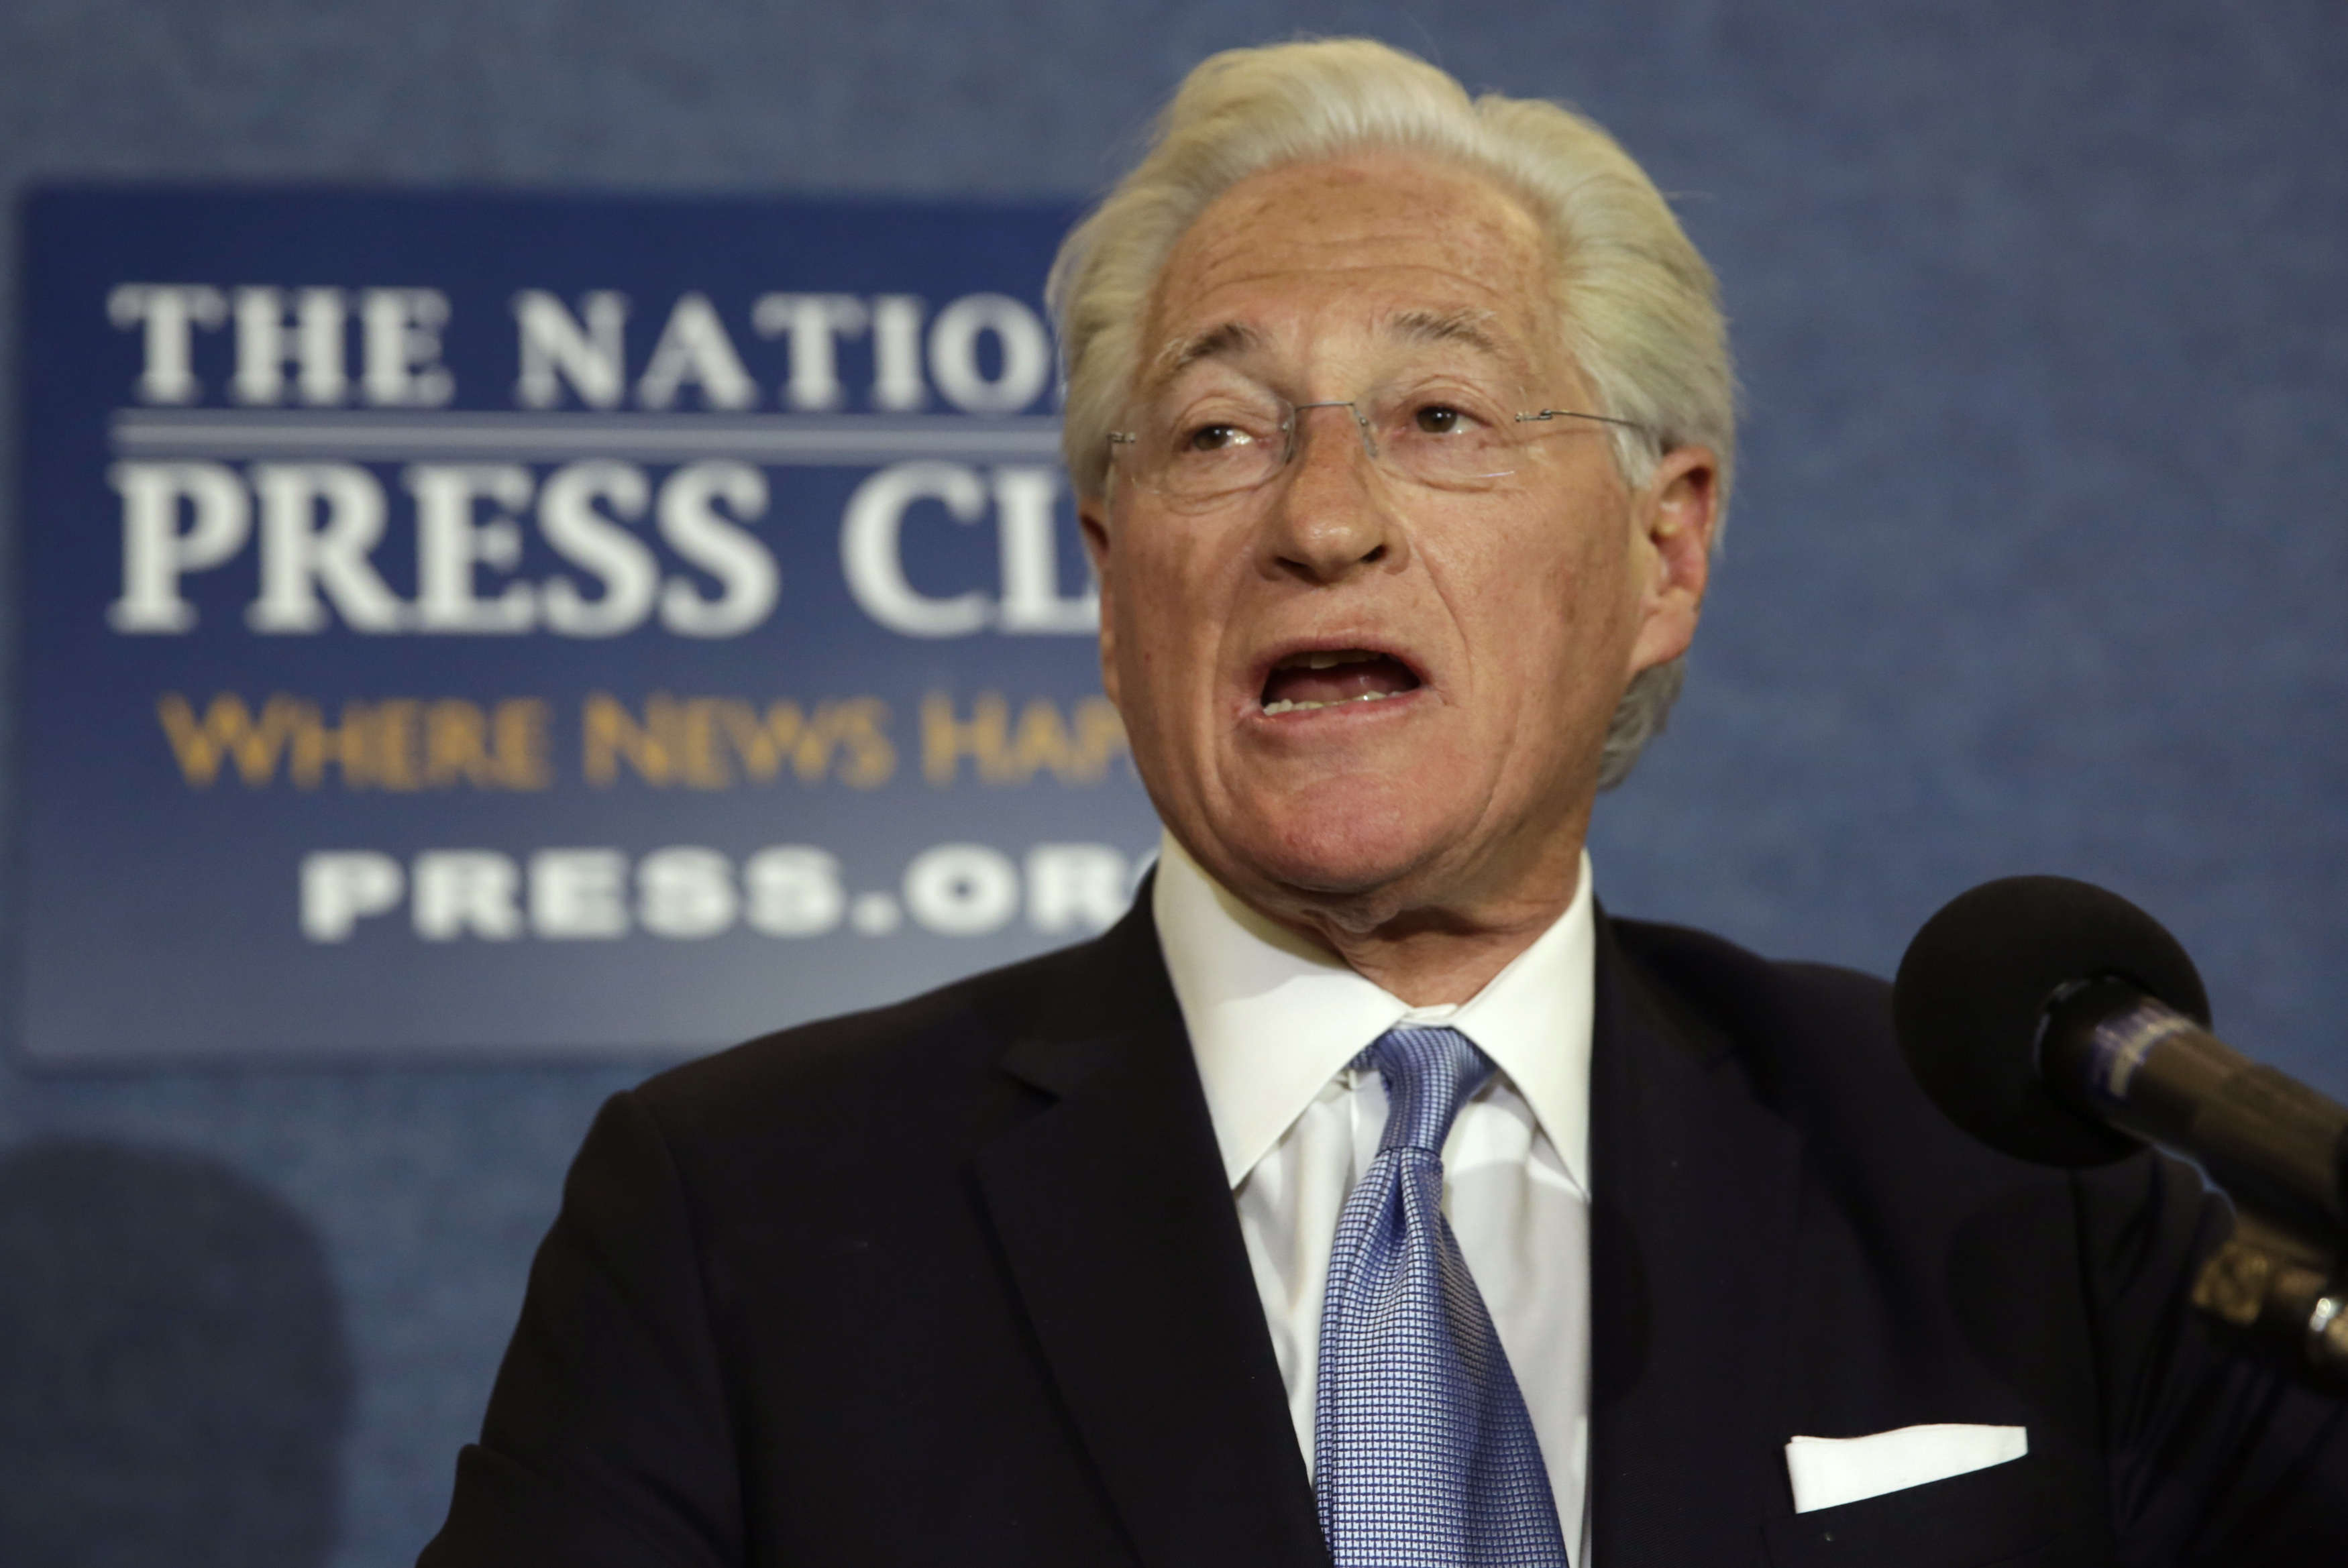 U.S. President Donald Trump's personal attorney, Marc Kasowitz, speaks to the news media after the congressional testimony of former FBI Director James Comey, at the National Press Club in Washington, U.S. June 8, 2017.